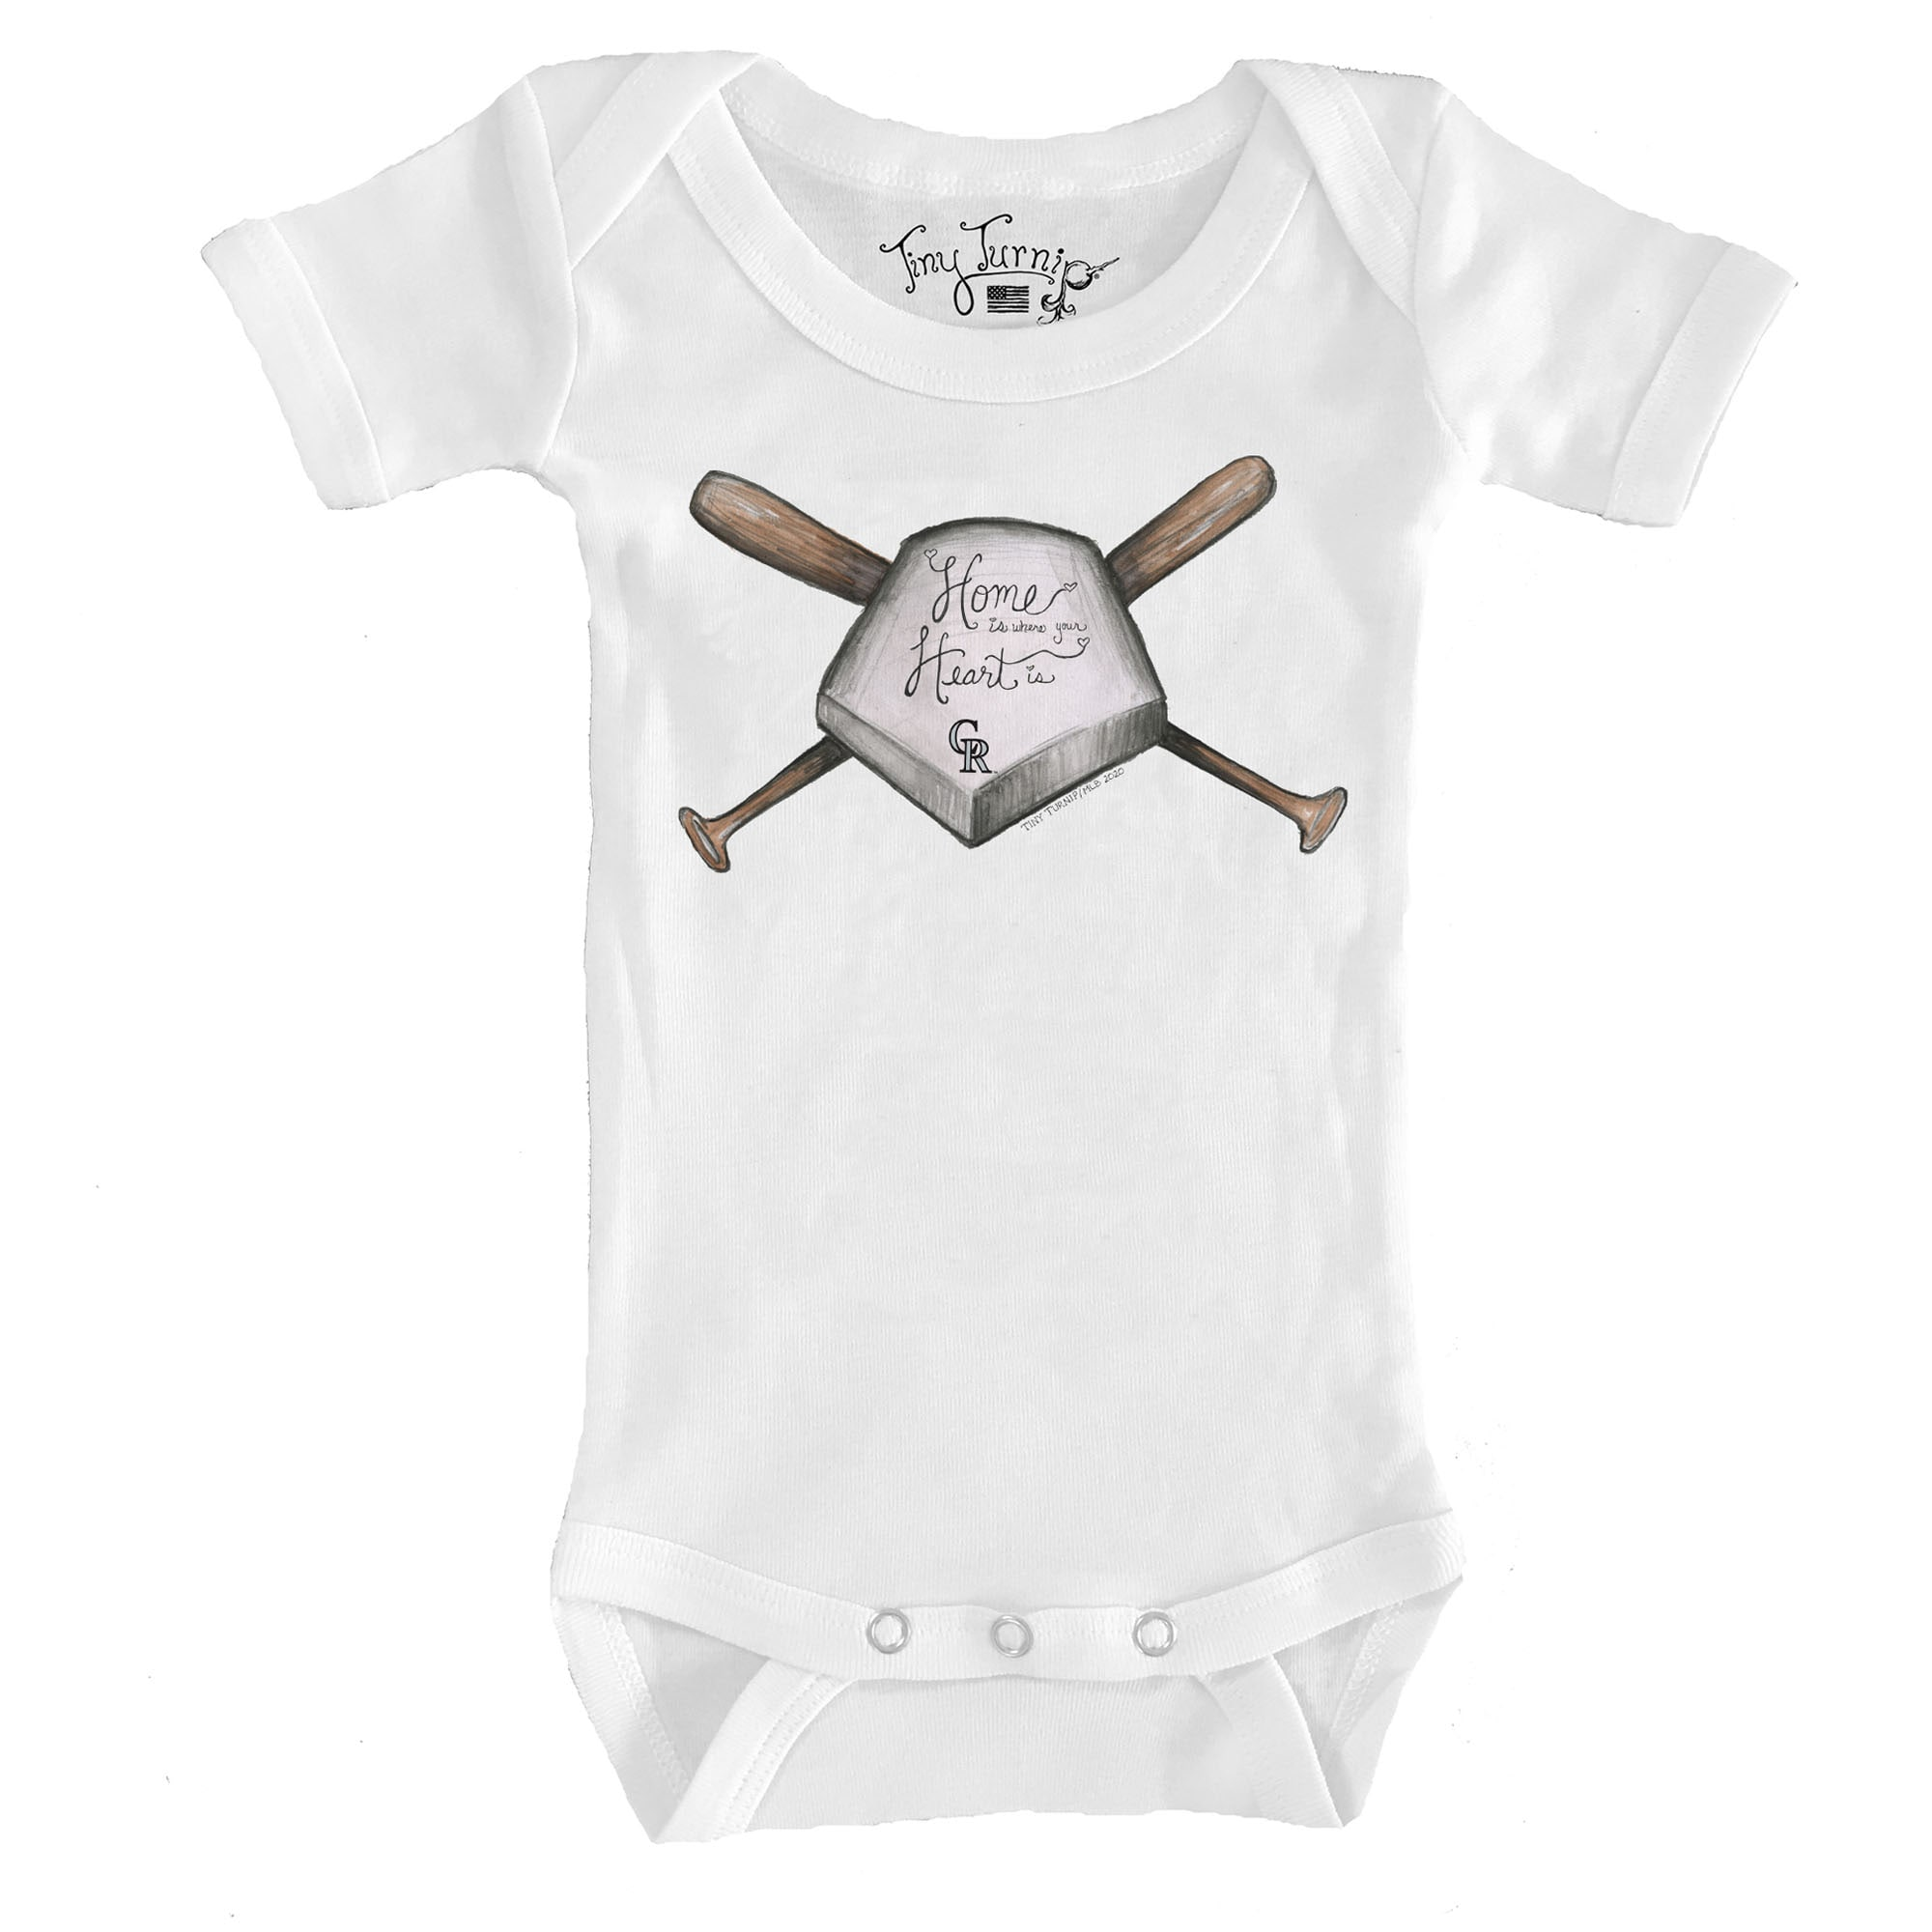 Colorado Rockies Tiny Turnip Infant Home Is Where Your Heart Is Bodysuit - White